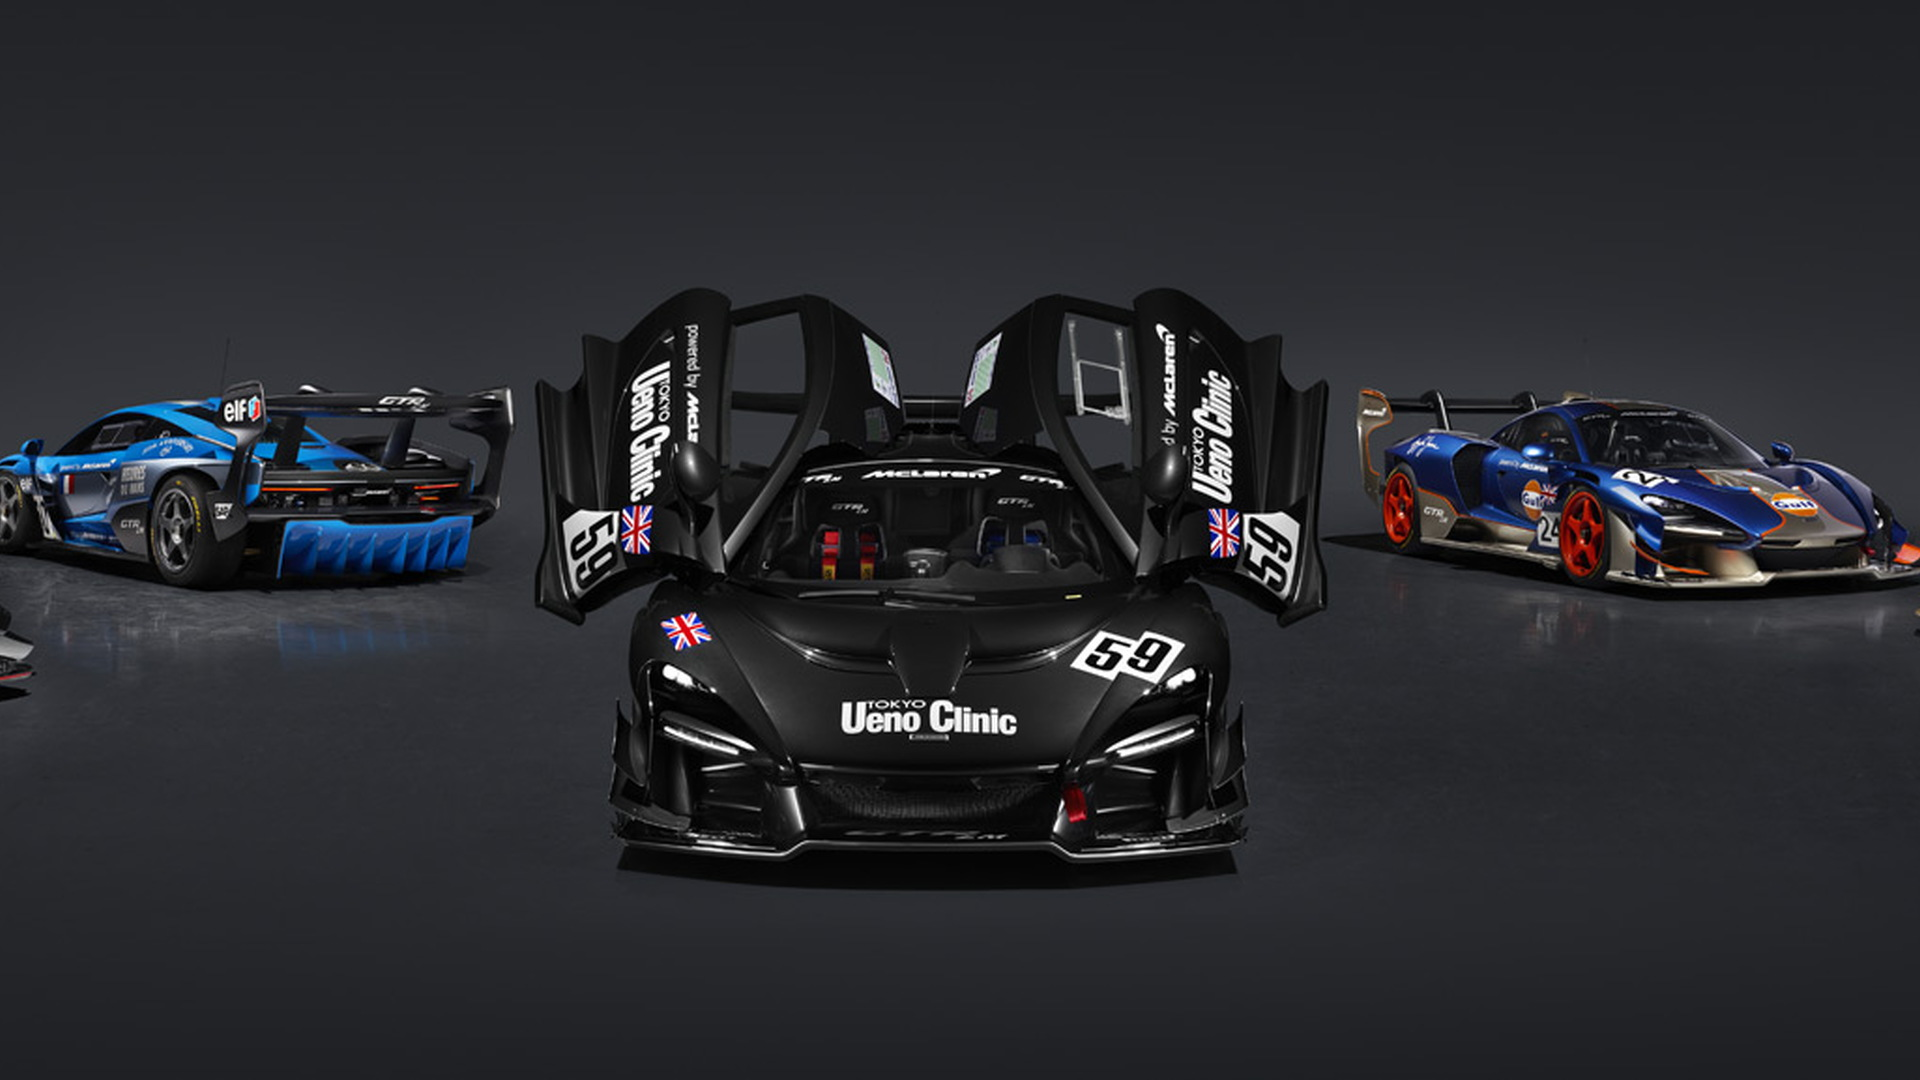 McLaren Senna GTR LM celebrates firm's historic Le Mans win